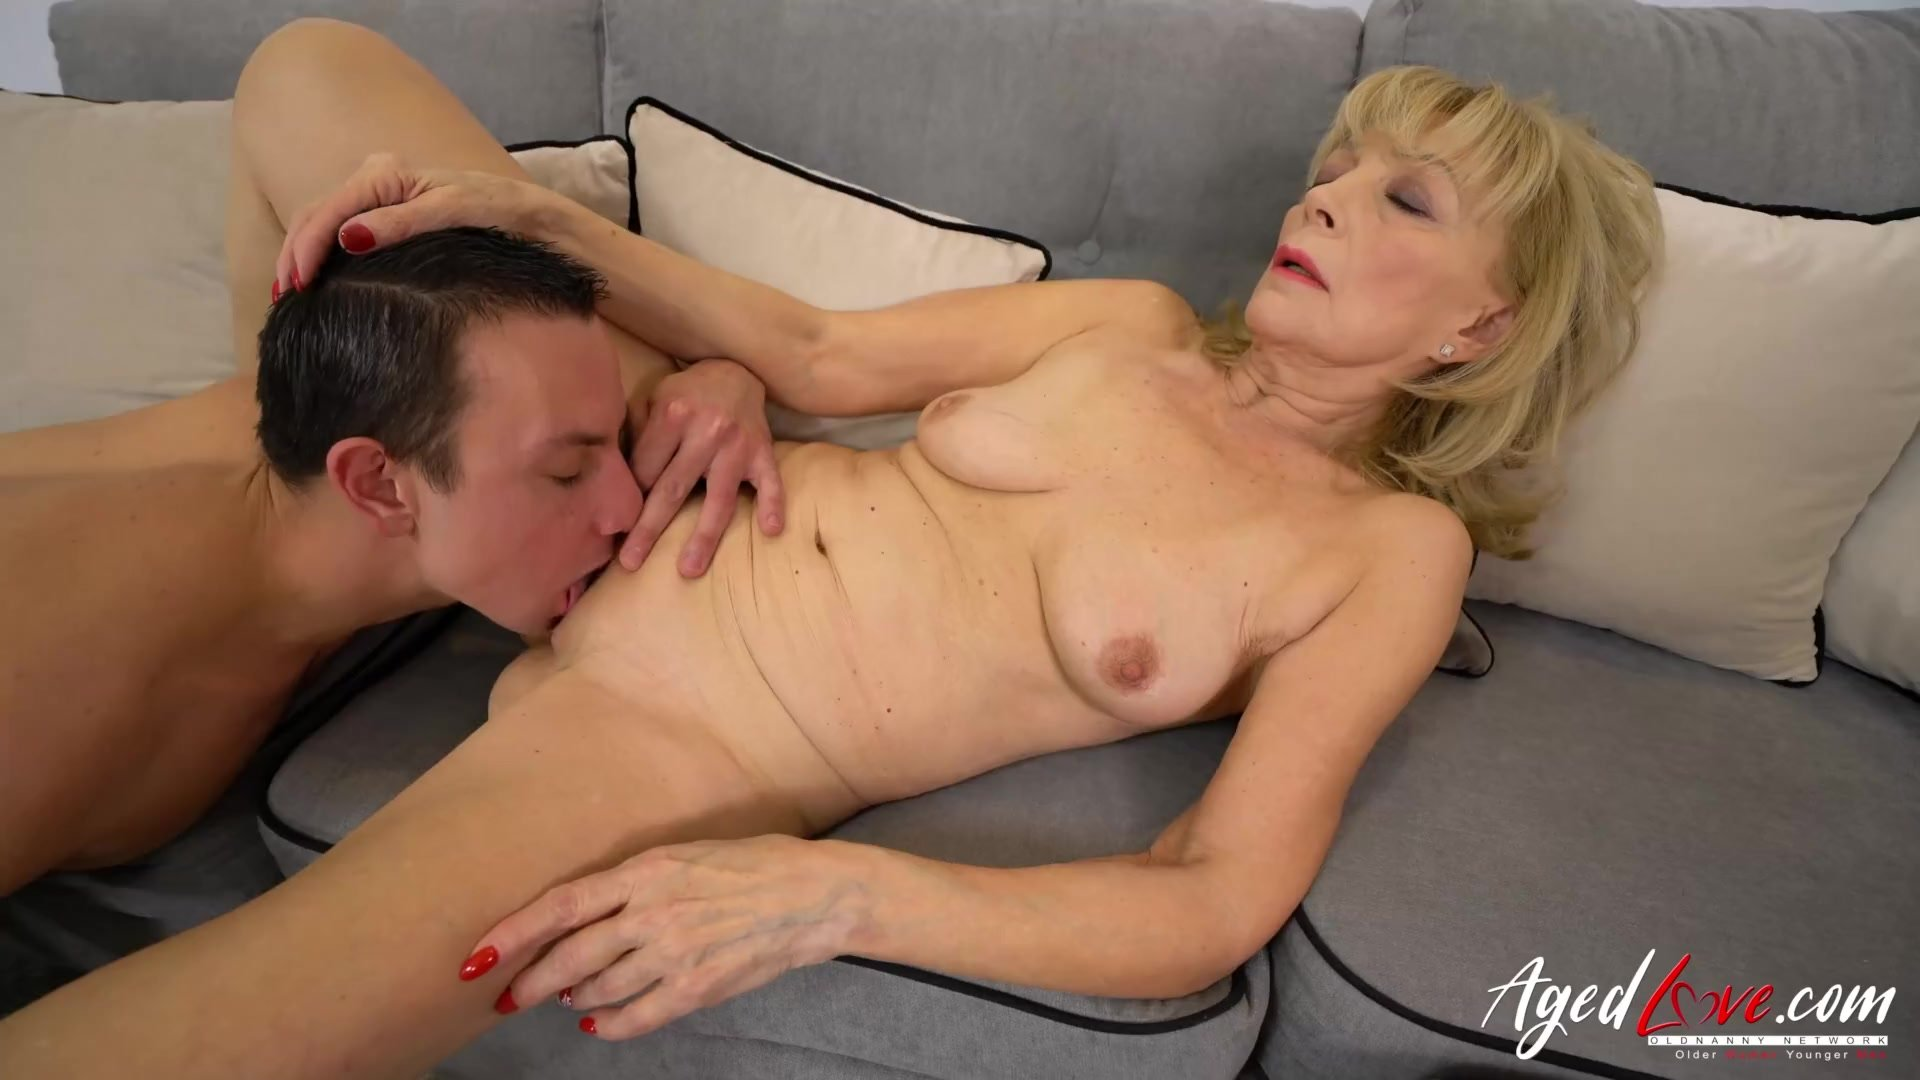 Agedlove Blonde Mature Fucked Hard By